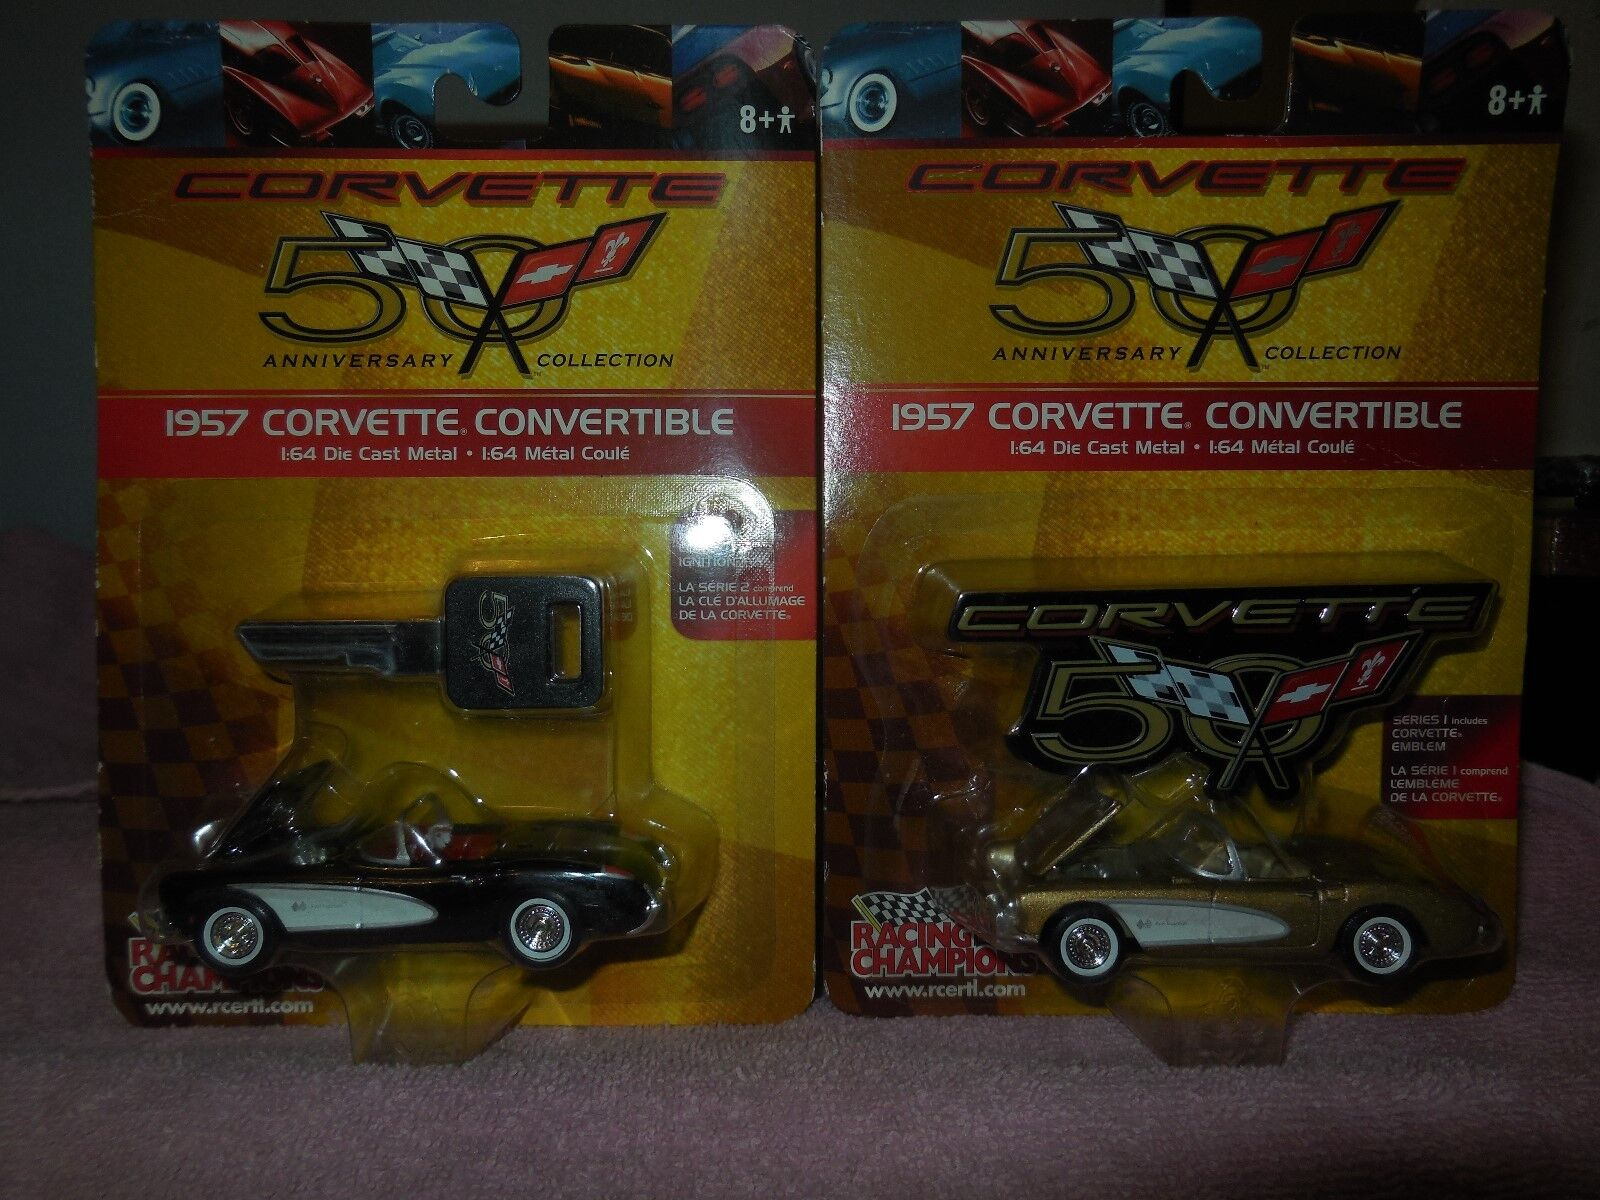 2 2002 diecast racing champions 1957 corvette congreenibles congreenibles congreenibles c5bf9d